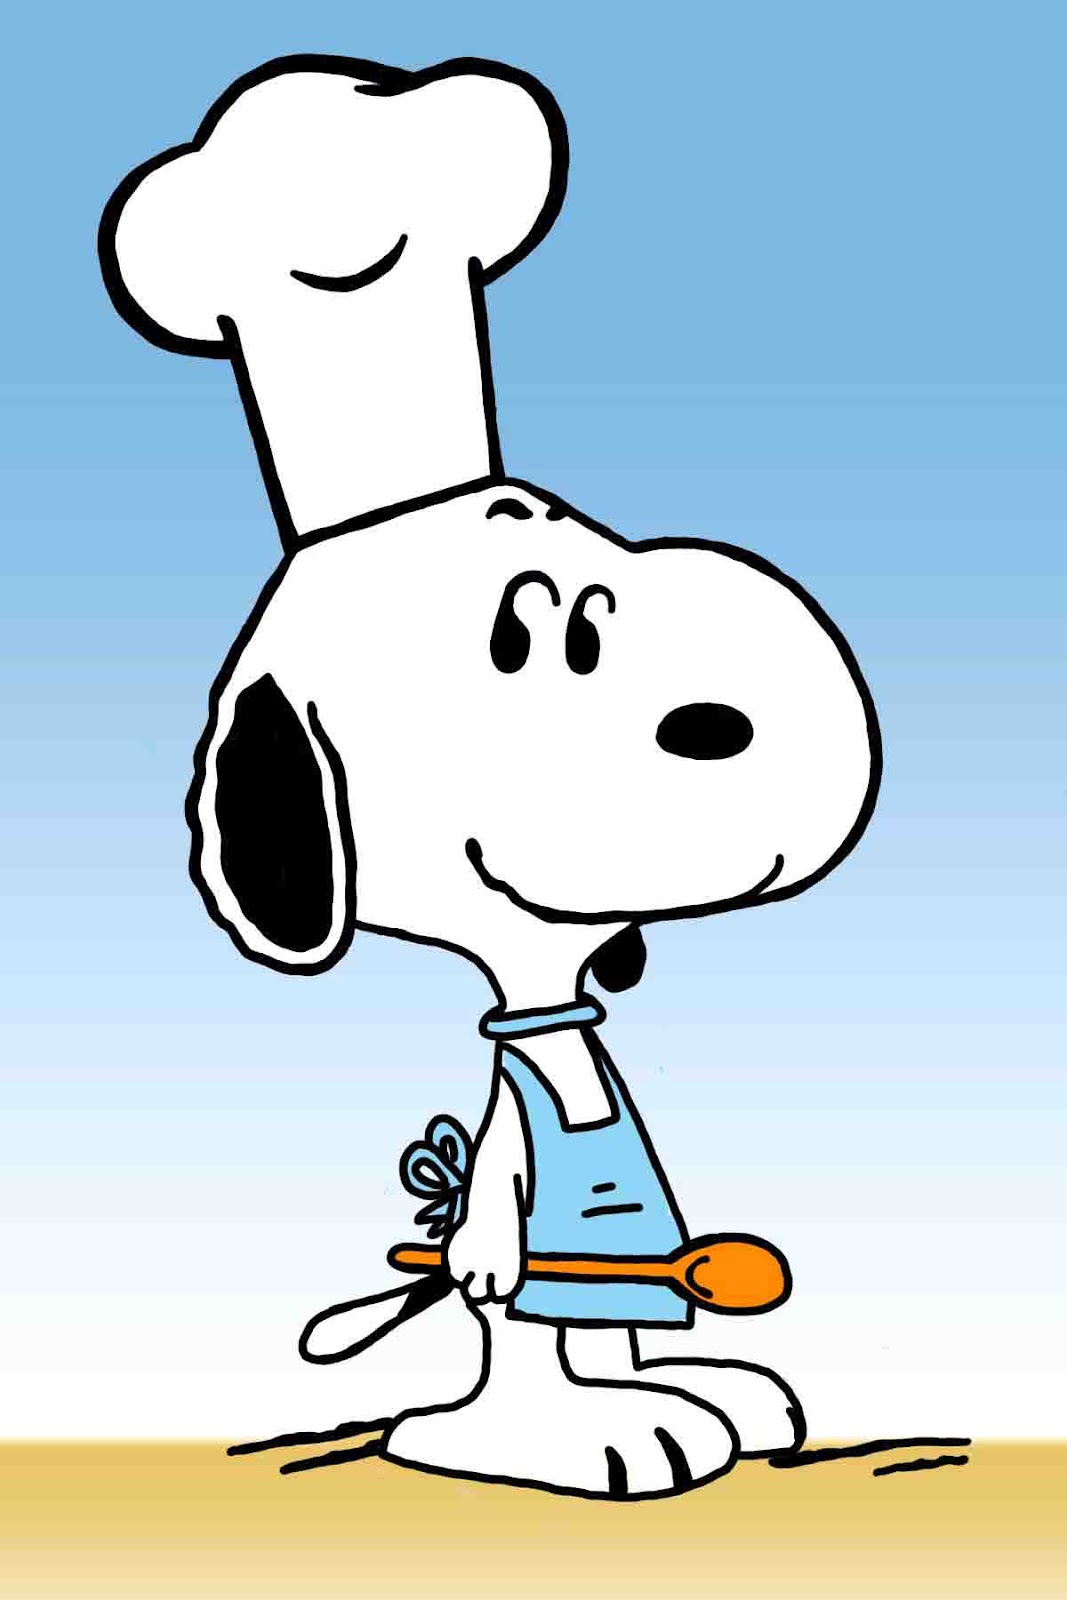 Cookbook Clipart : cookbook, clipart, Snoopy, Library